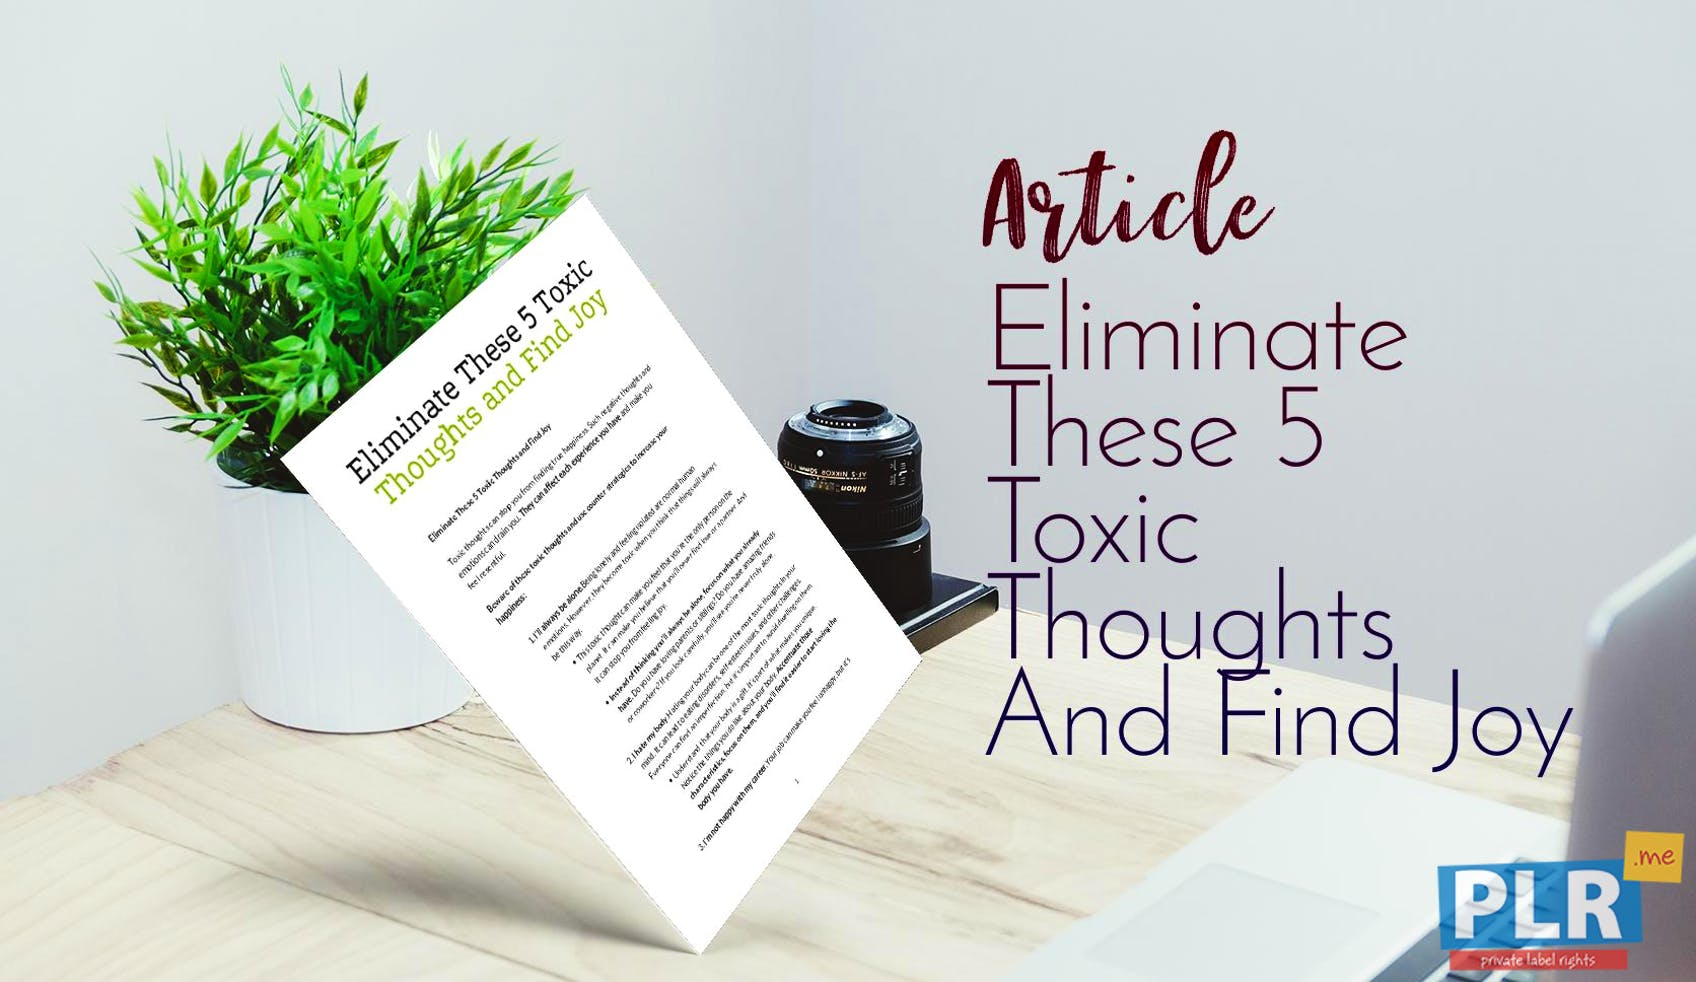 Eliminate These 5 Toxic Thoughts And Find Joy